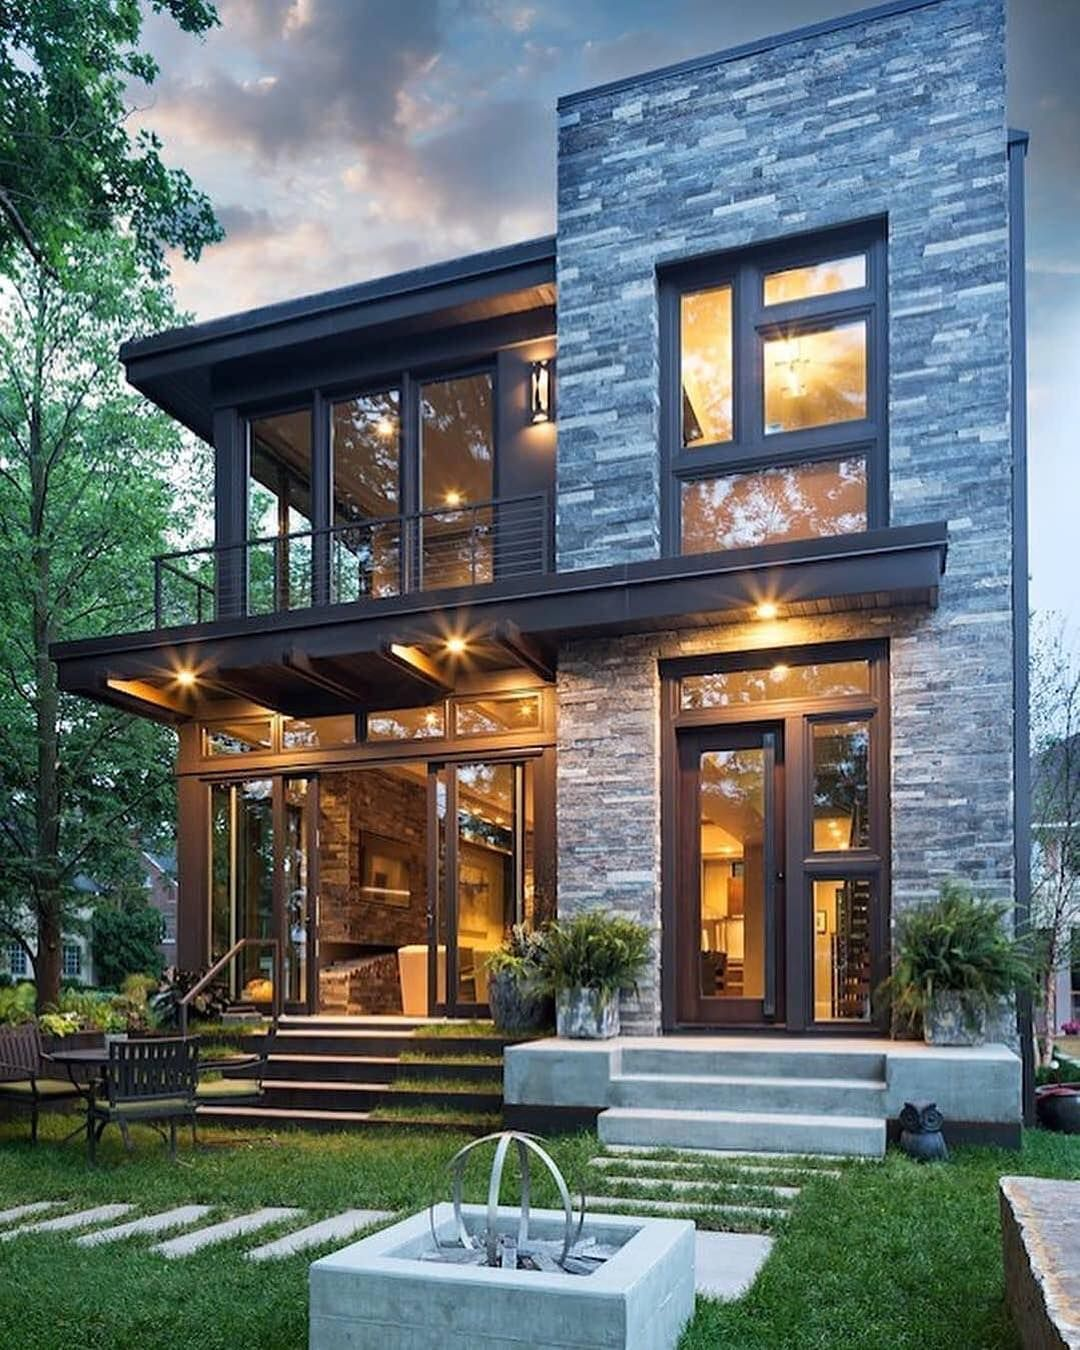 House exterior on instagram  clighting of the really wonderful wha do you think for more angle follow housexterior modern architecture also best build images in rh pinterest